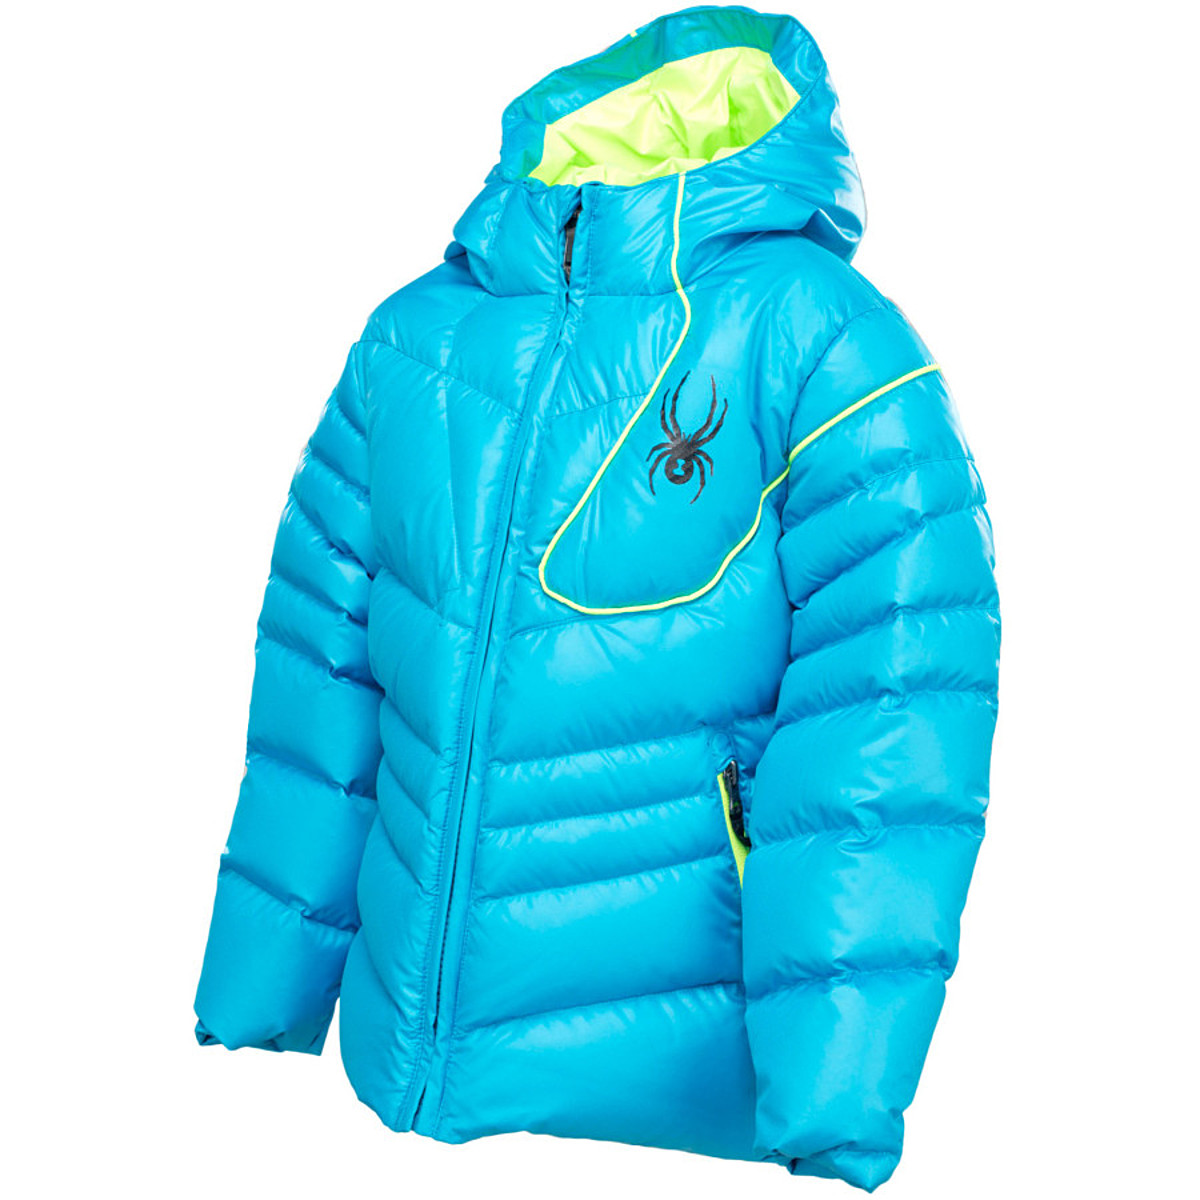 Spyder Mini Upside Down Jacket